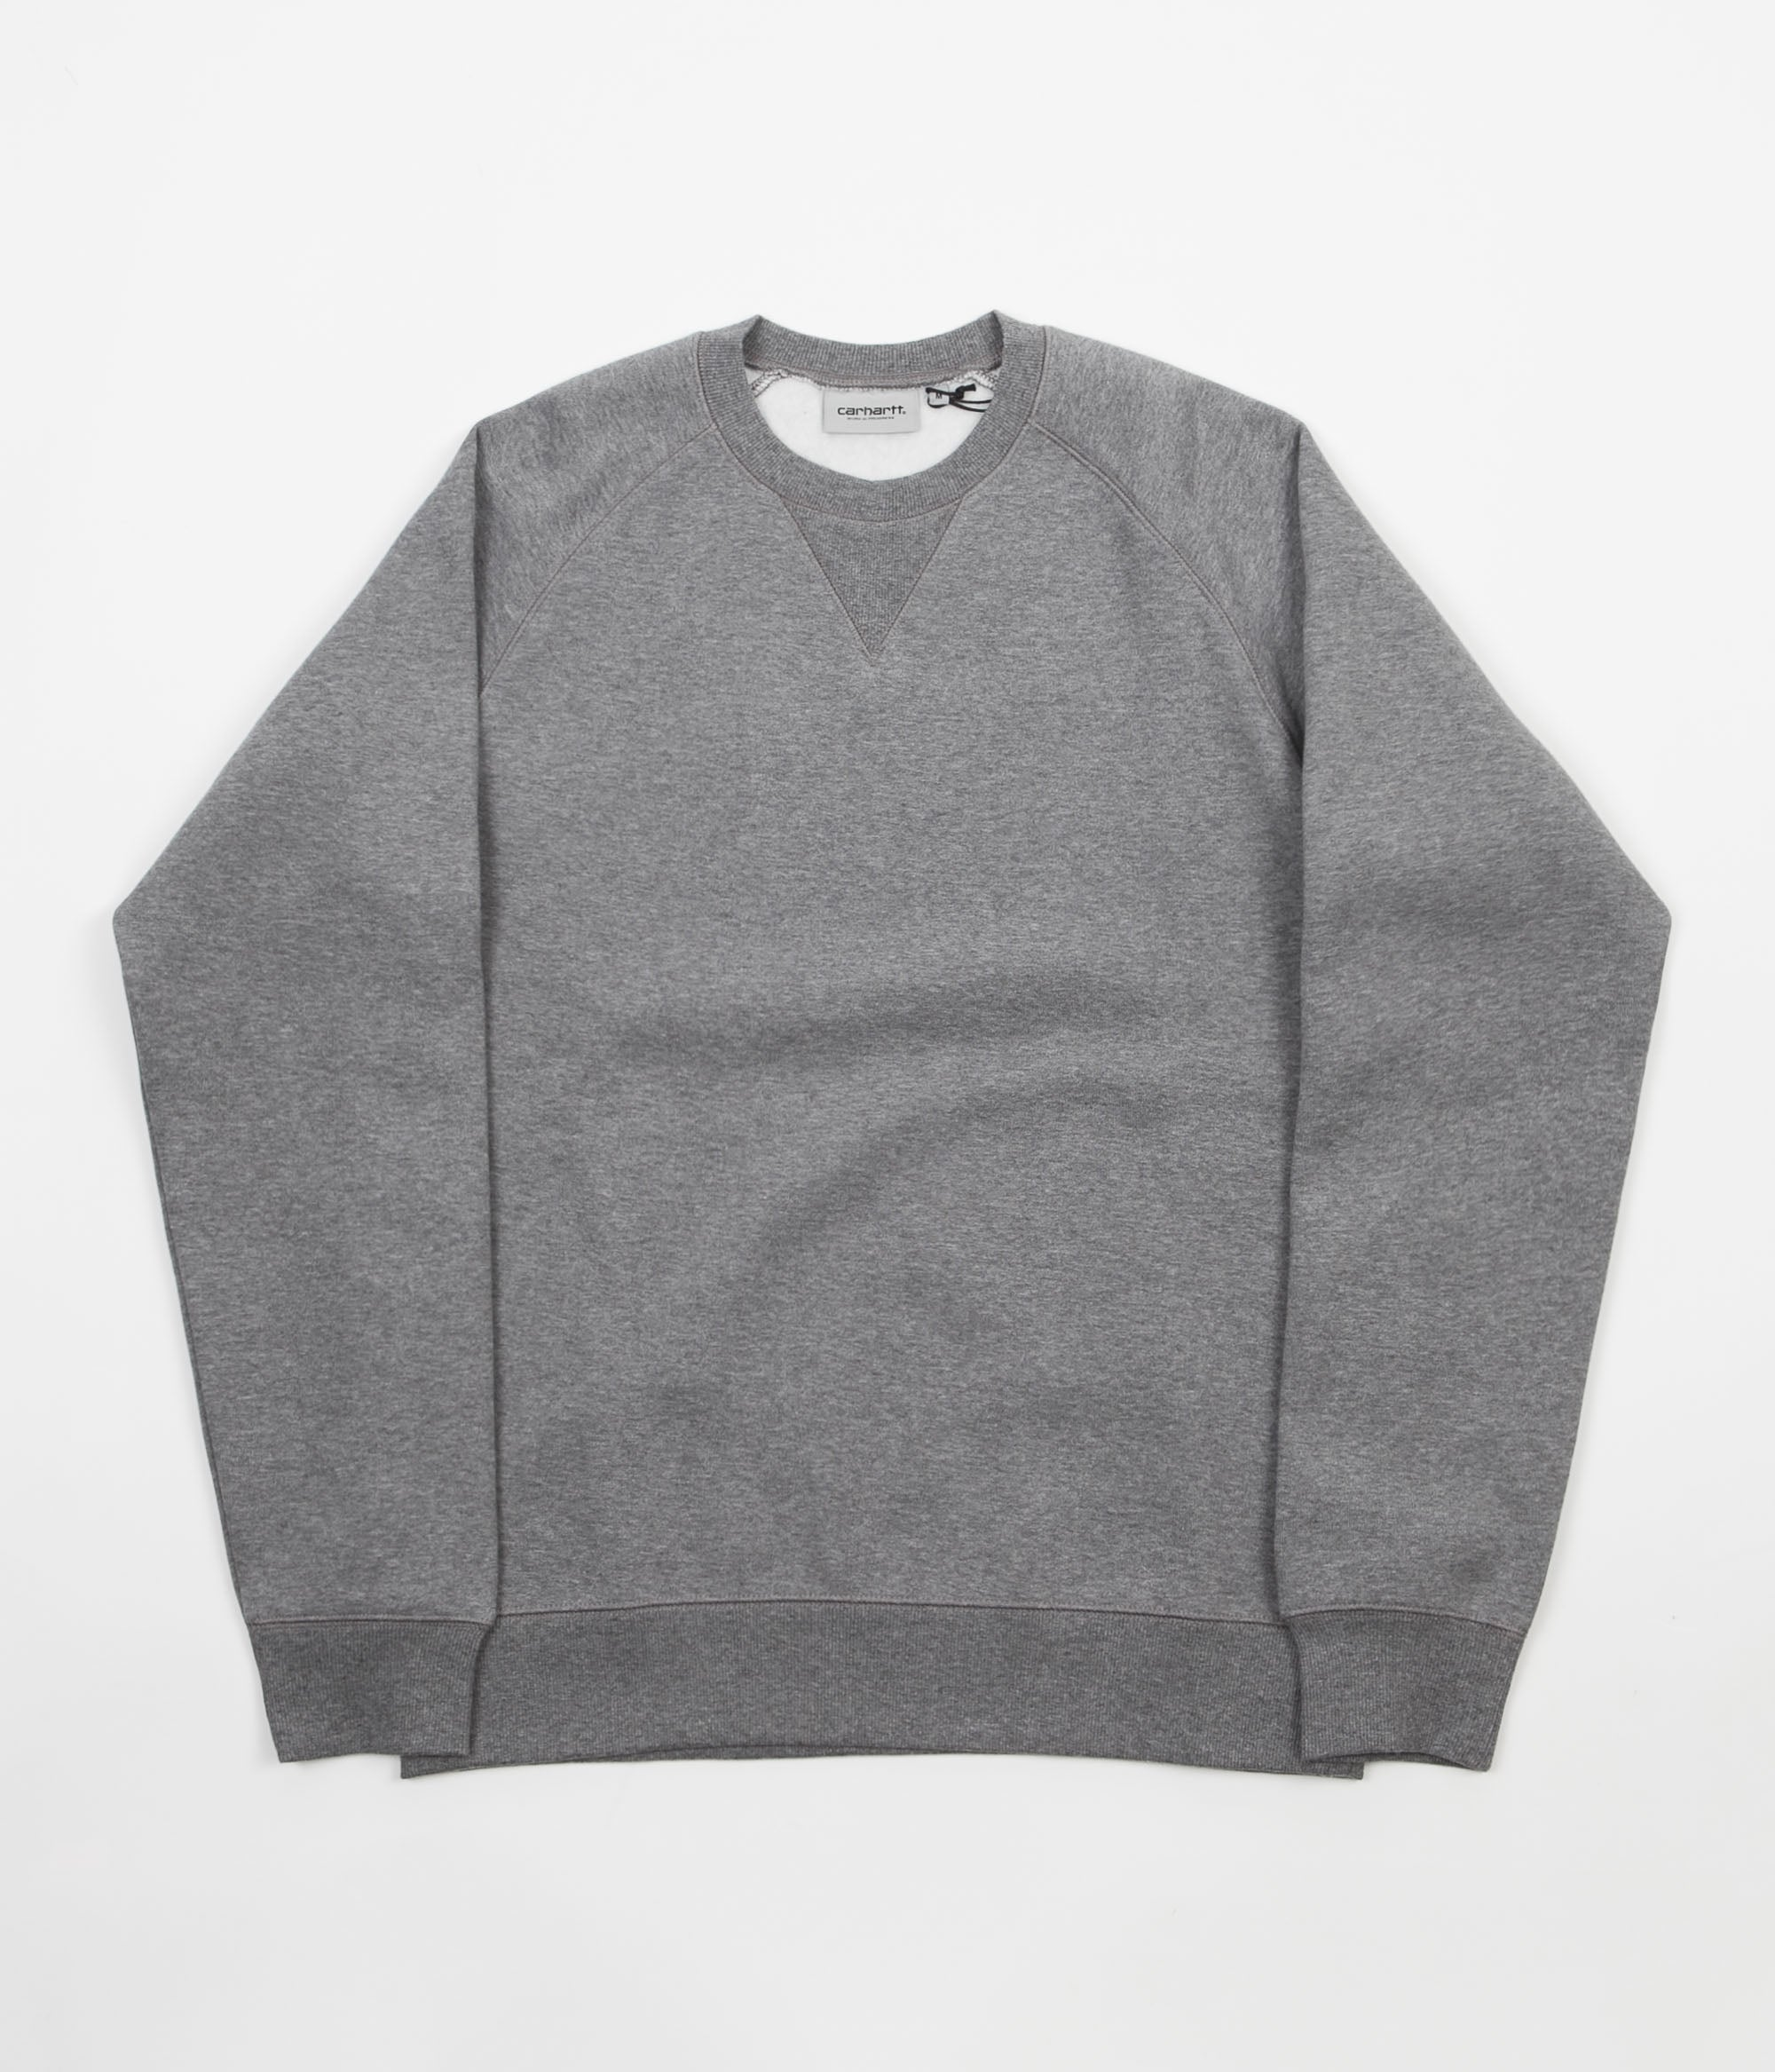 Carhartt Chase Crewneck Sweatshirt - Dark Grey Heather / Gold